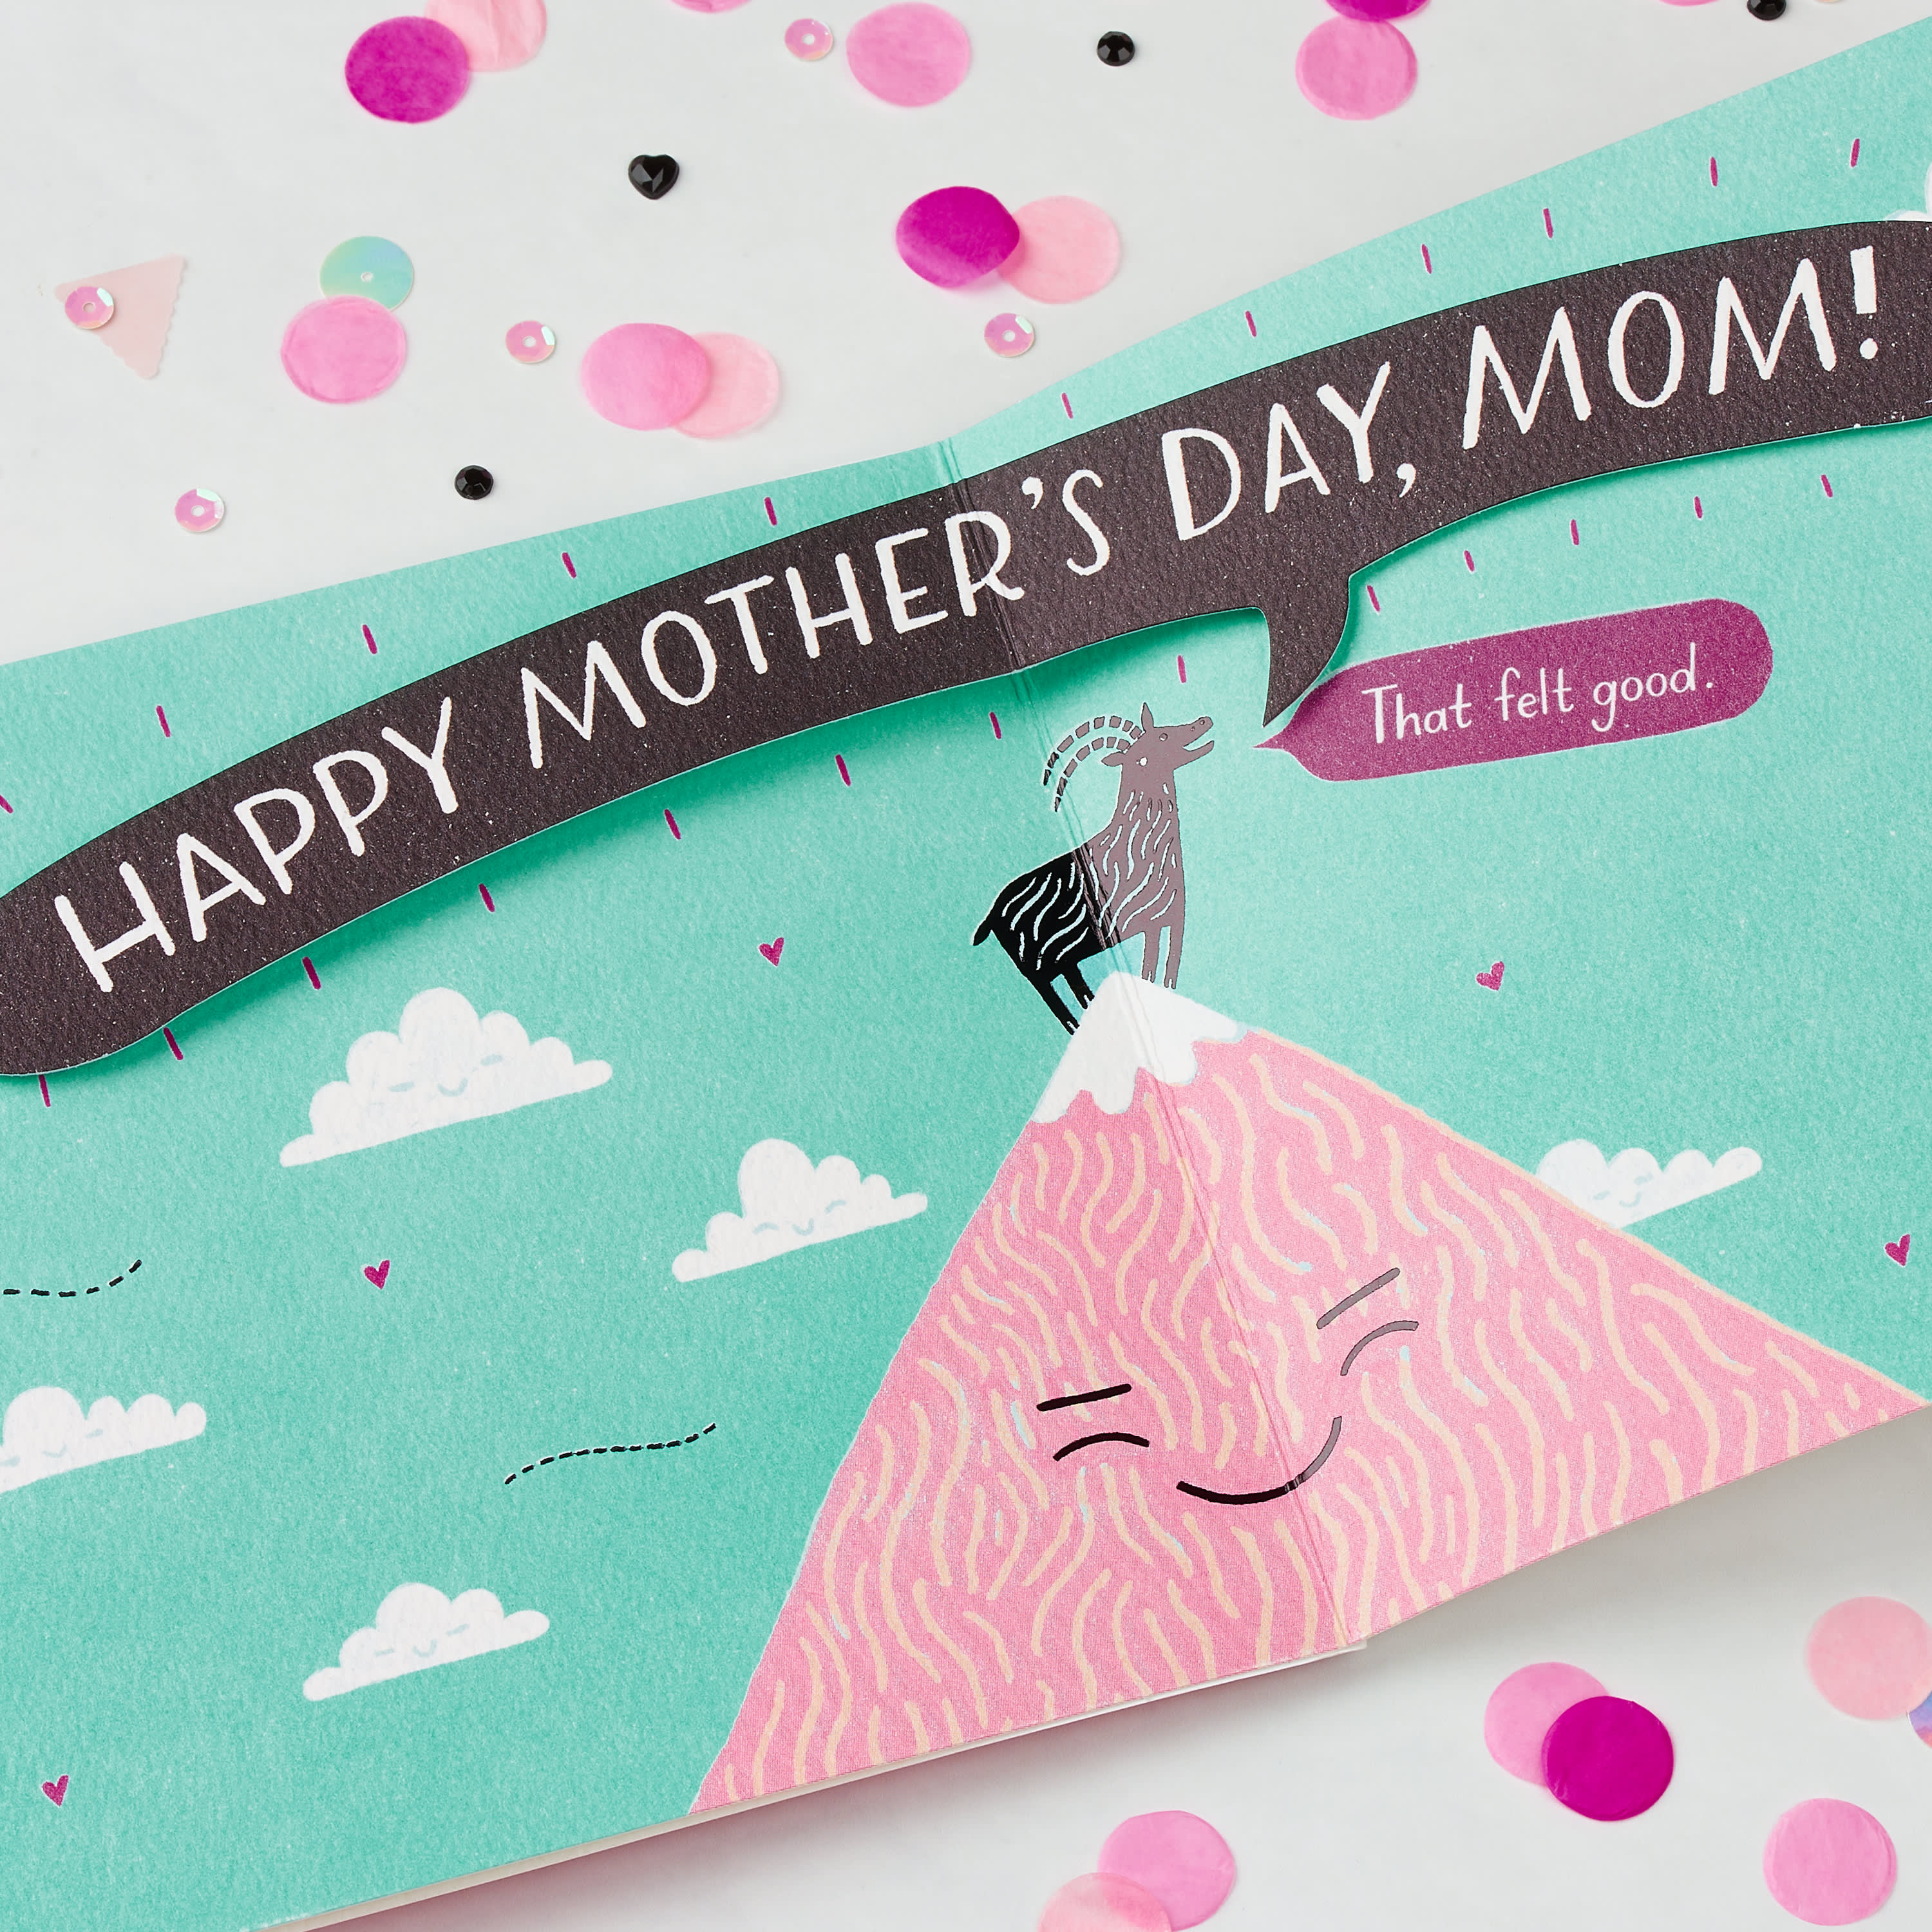 Funny Mother's Day Goat Card image